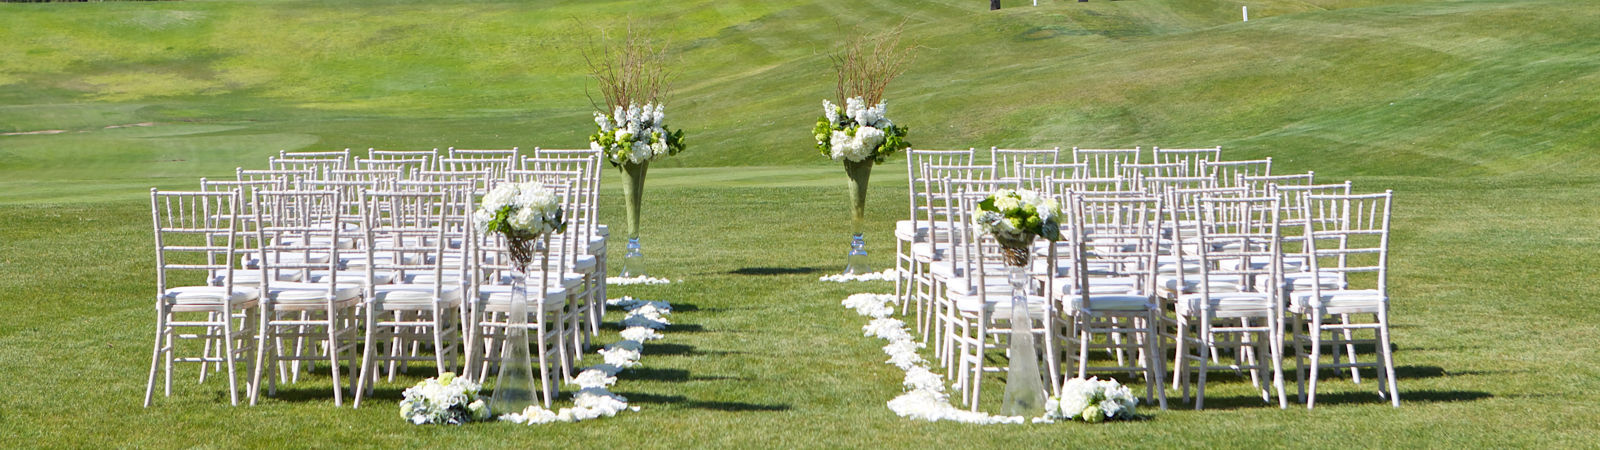 Carmel Valley Ranch_Weddings_ceremony on Valley View lawn